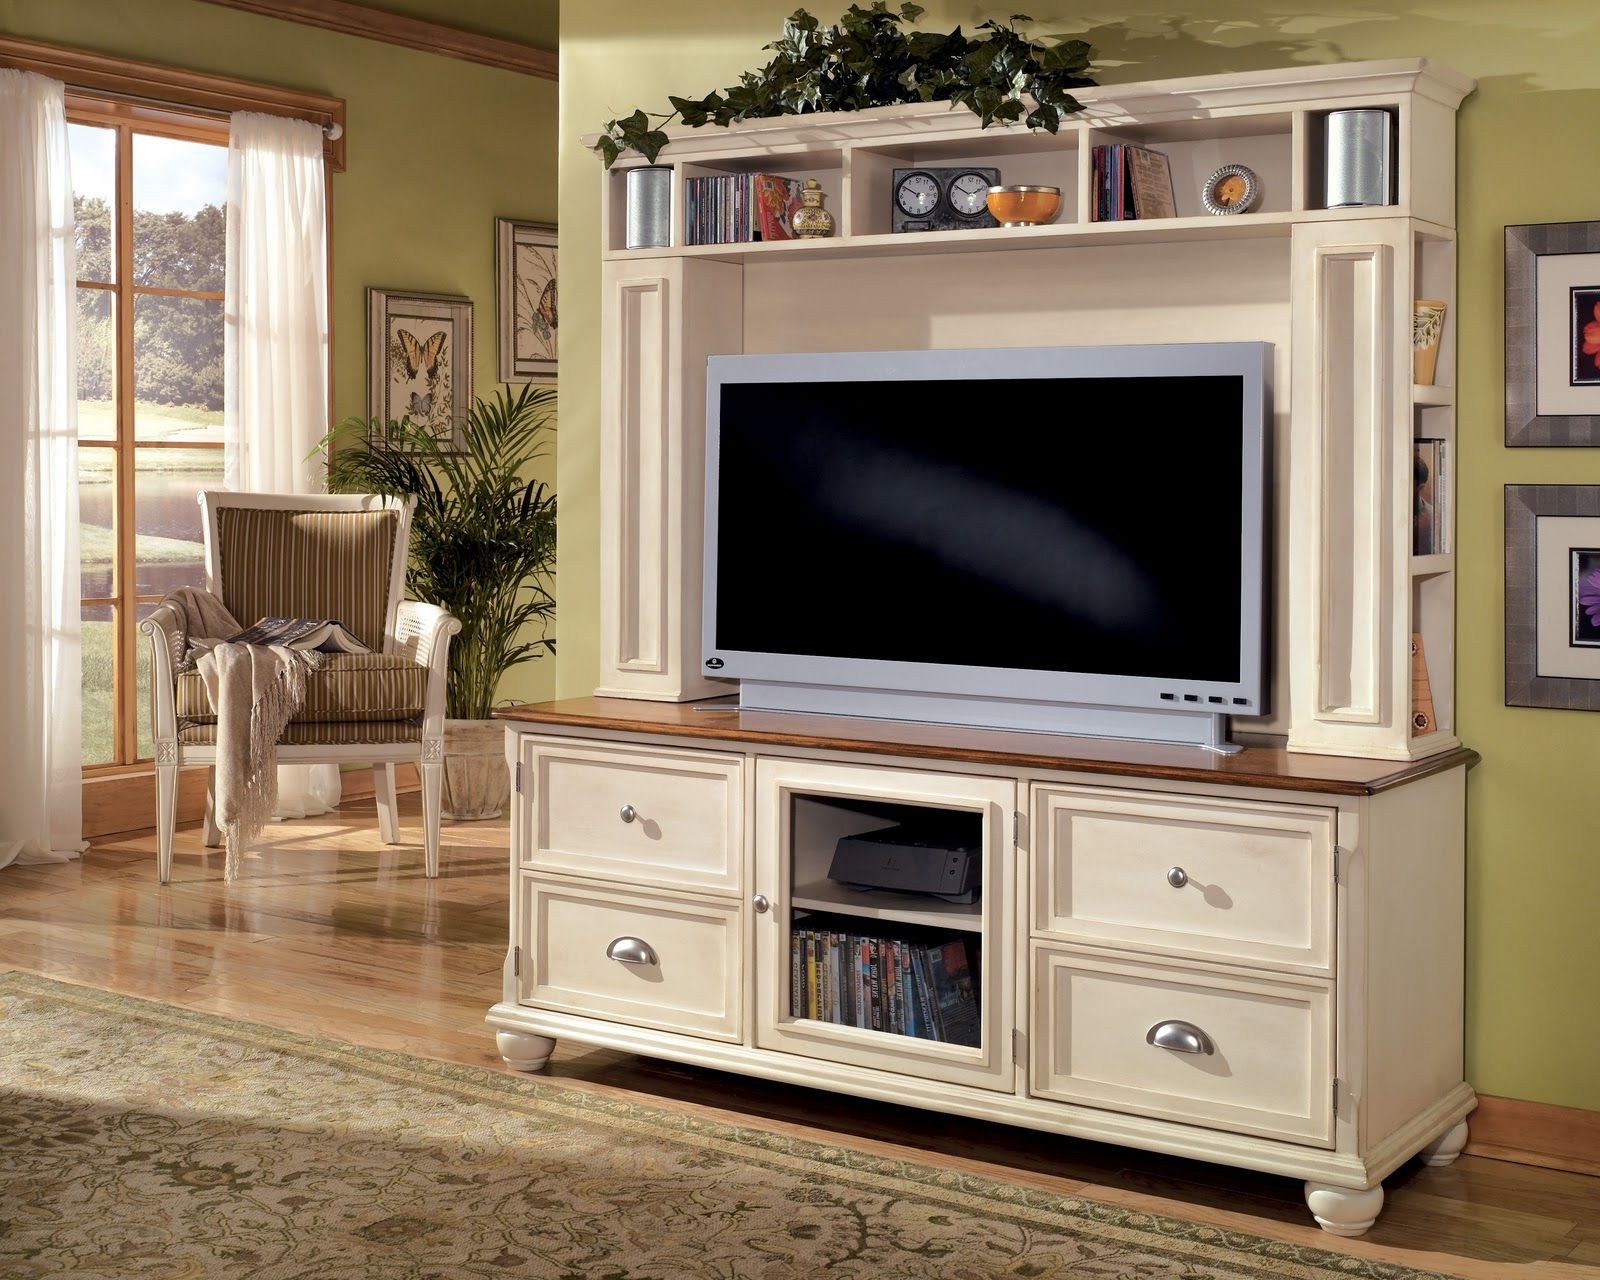 Blog From Freshome For All The Tv Within French Country Tv Cabinets (Gallery 1 of 20)